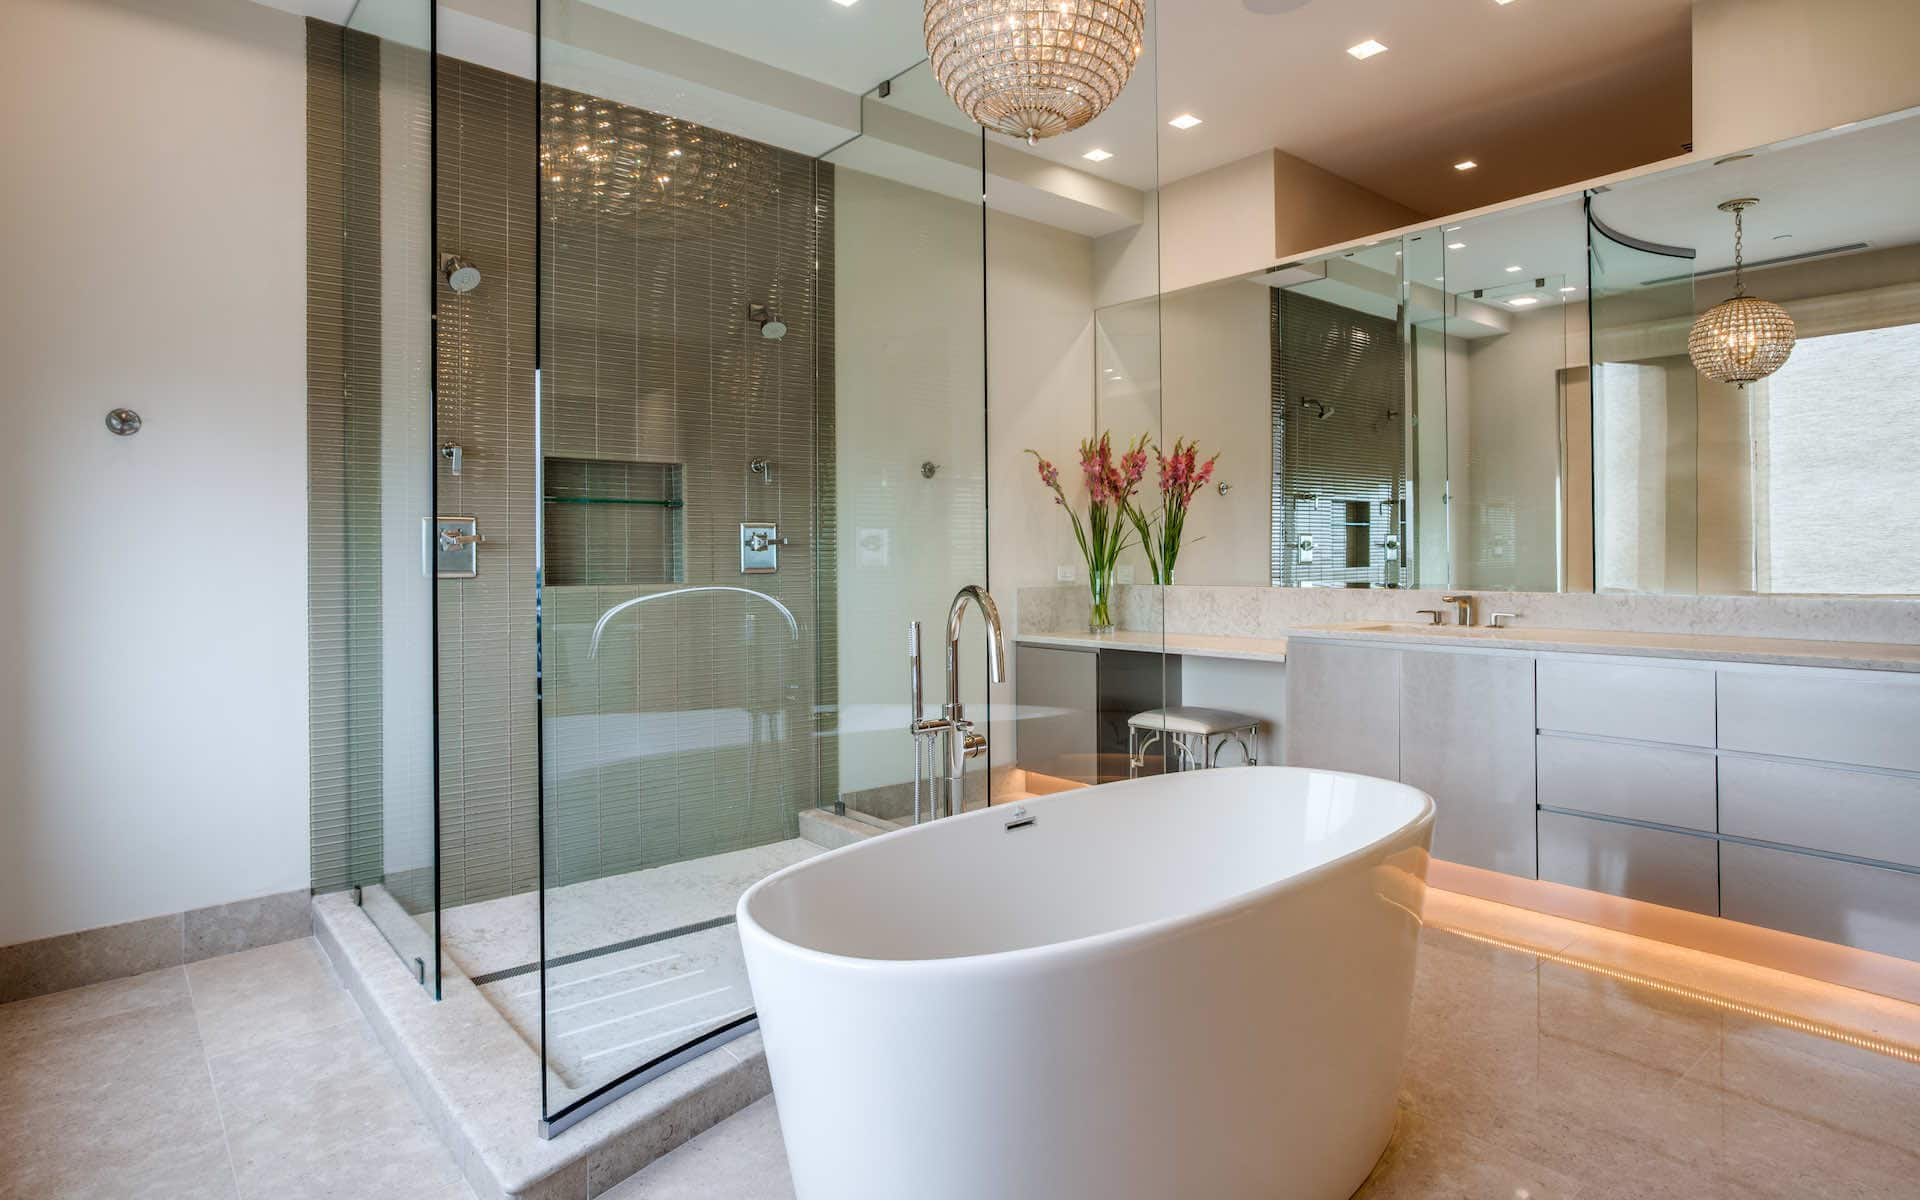 The master bath in this highrise condo new build has a huge walk-in shower for two and a stand-alone tub with a beautiful crystal chandelier to set off the space